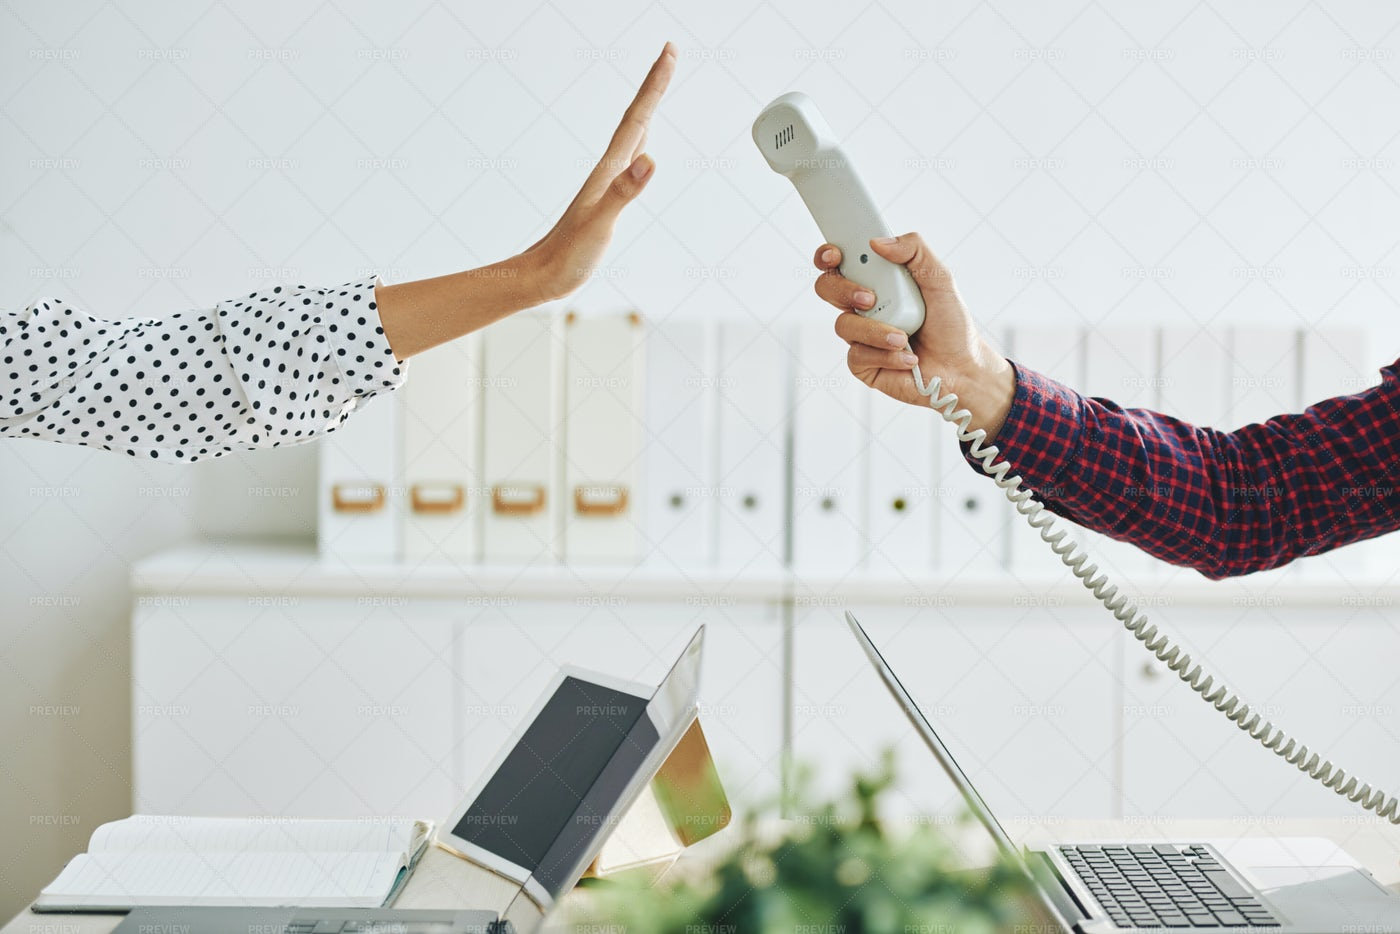 Woman Rejecting Call In Office: Stock Photos